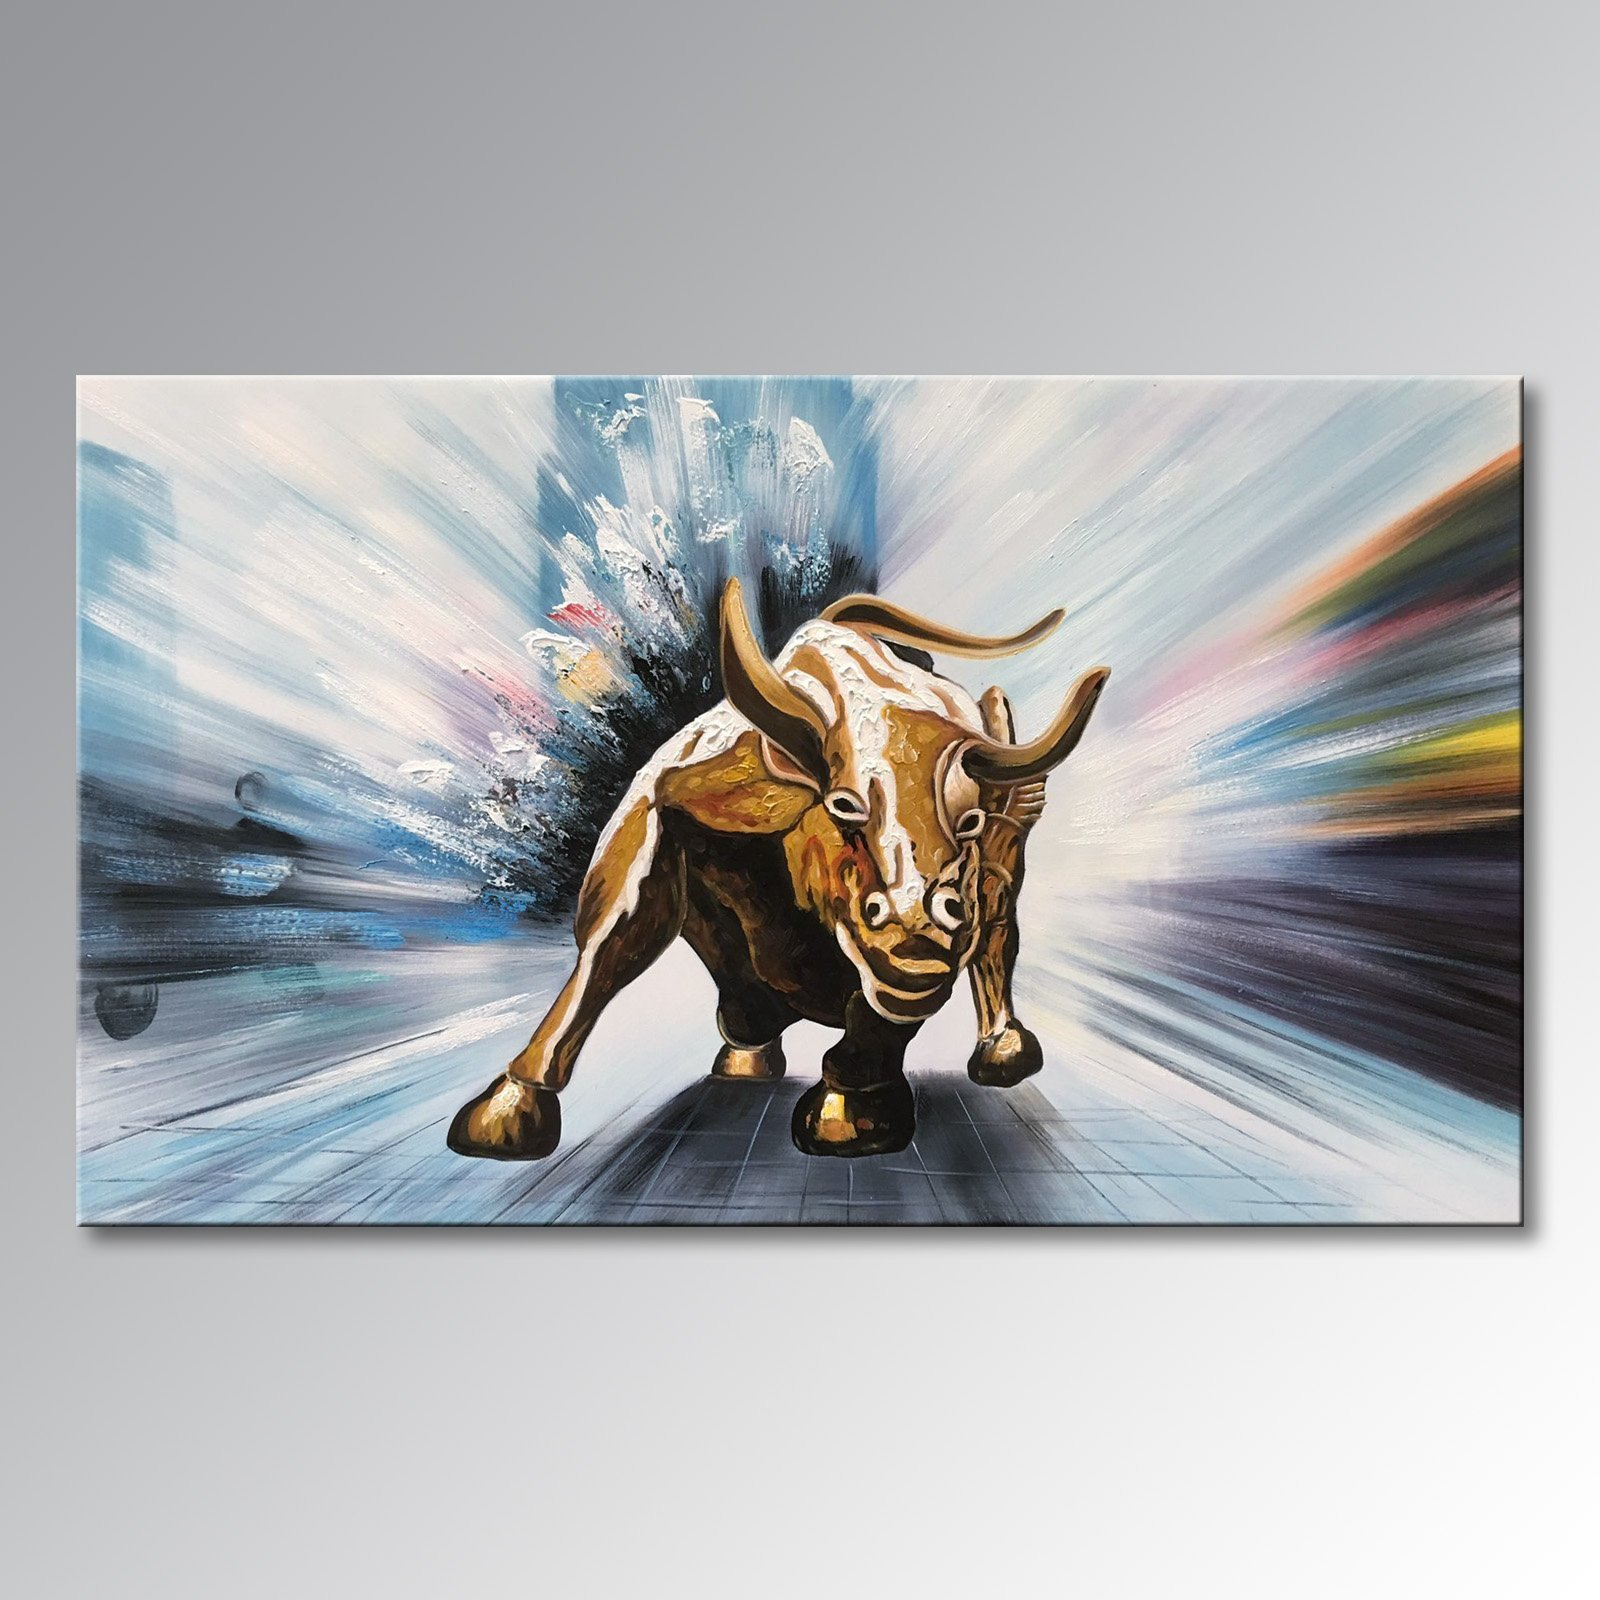 Winpeak Art Handmade Canvas Wall Art Modern Contemporary Oil painting Wll Street Bull Abstract Artwork Decor Hanging Framed Ready to Hang (40'' x 30'') by Winpeak Art